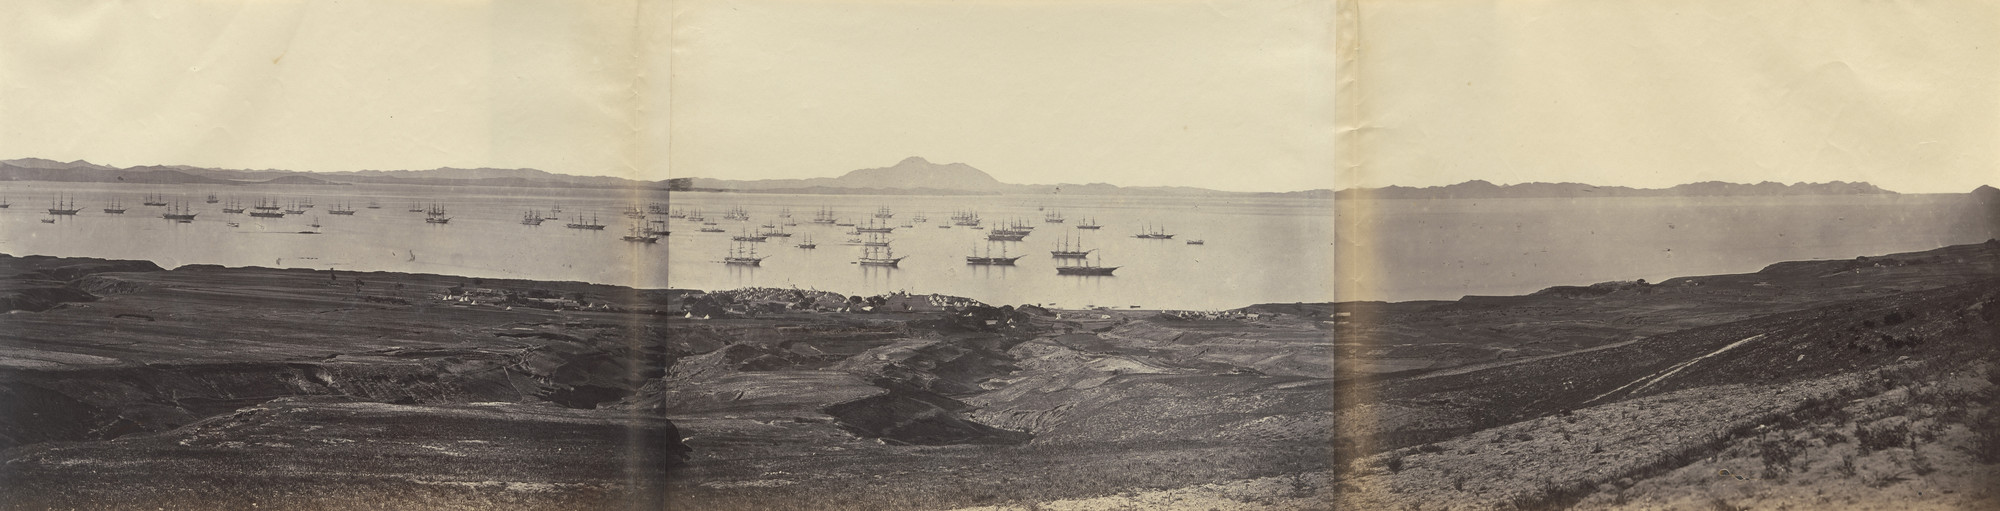 Felice Beato. Talien Whan Bay. July 21, 1860